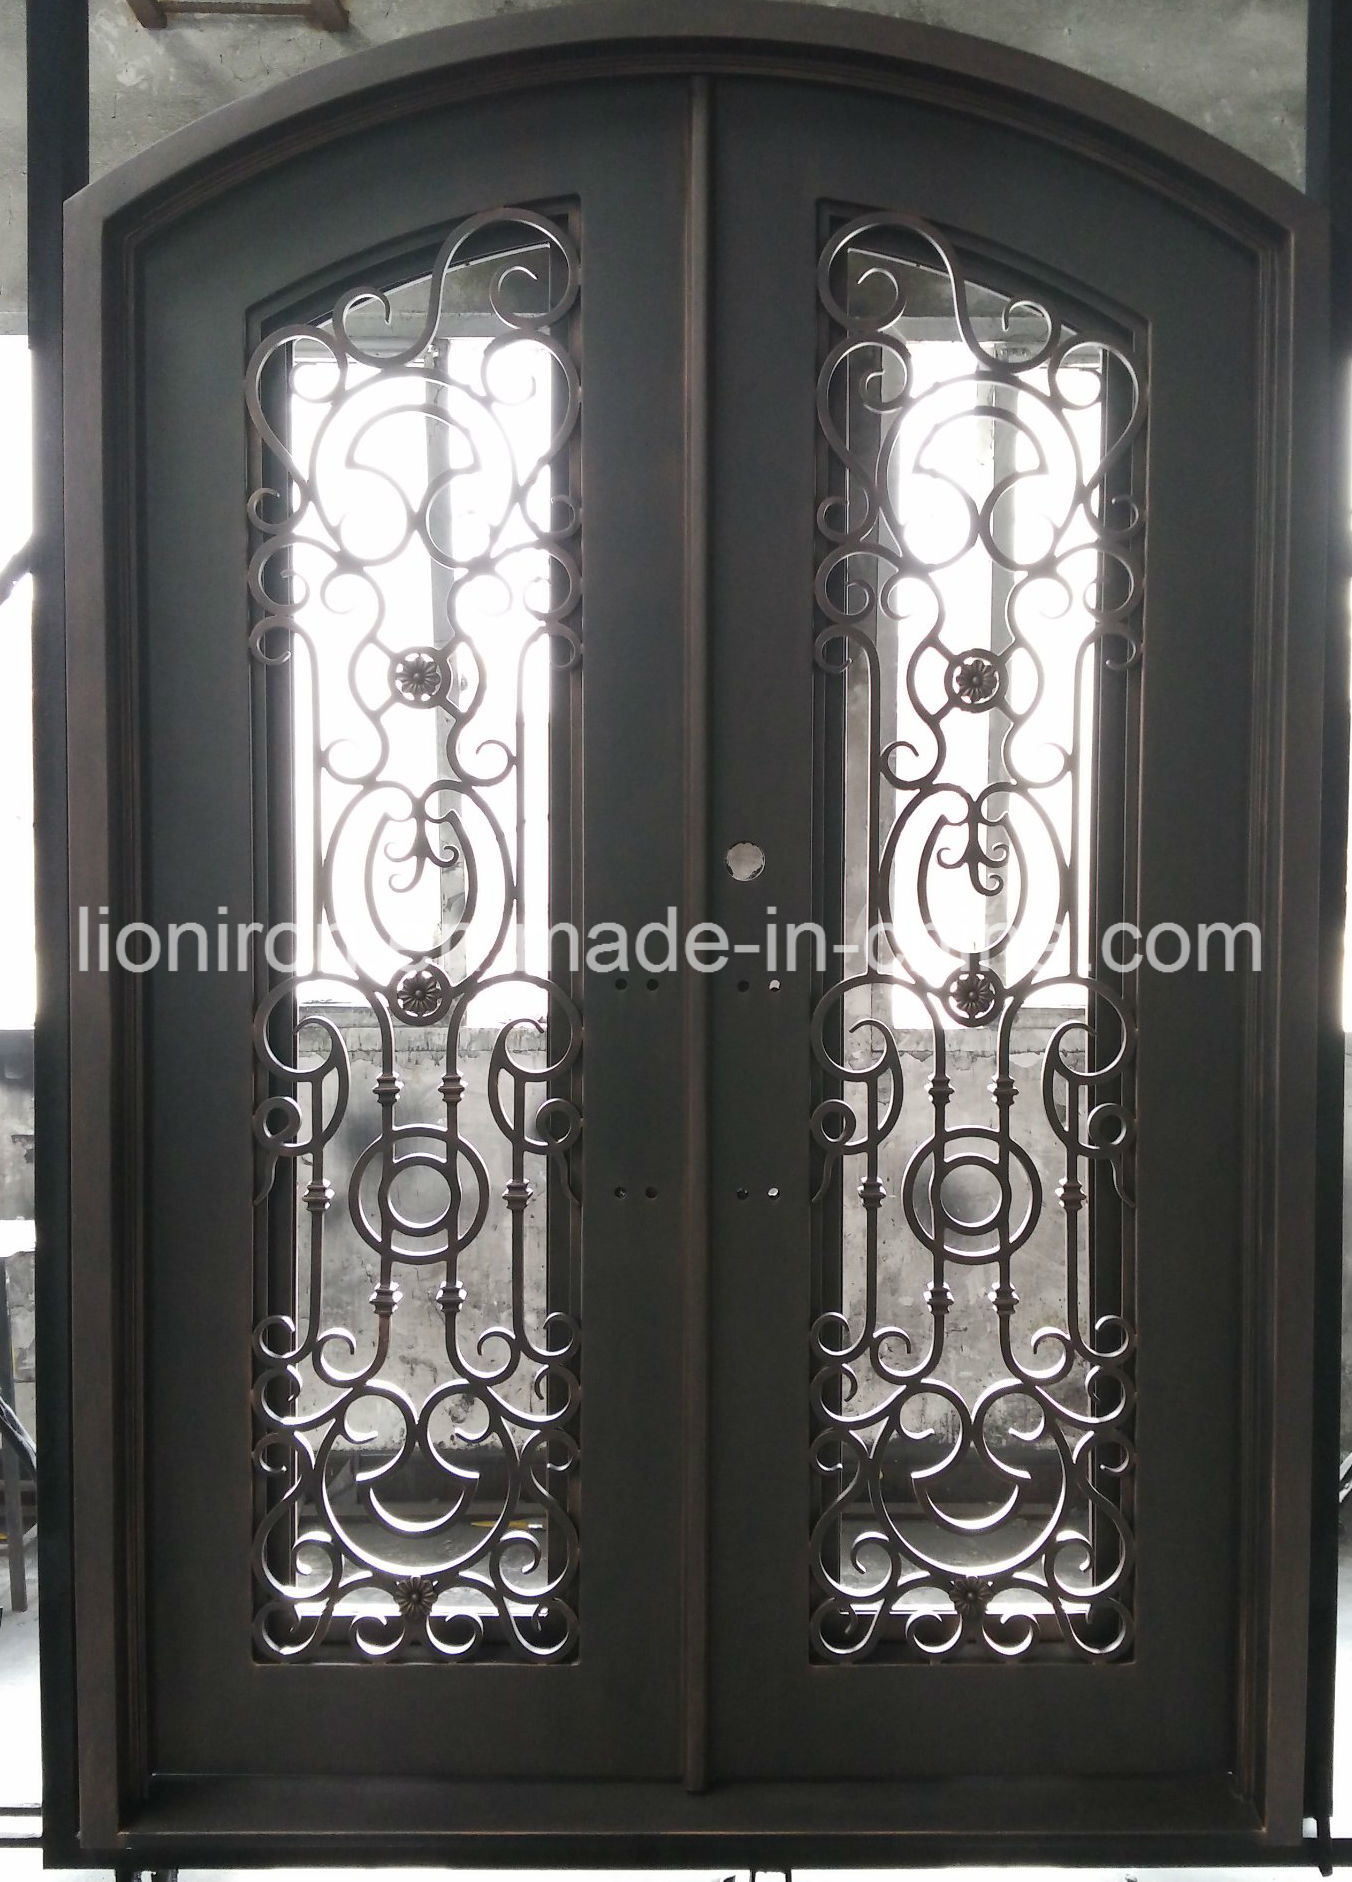 China Residential Low Price Wrought Iron Security Doors Entry Door